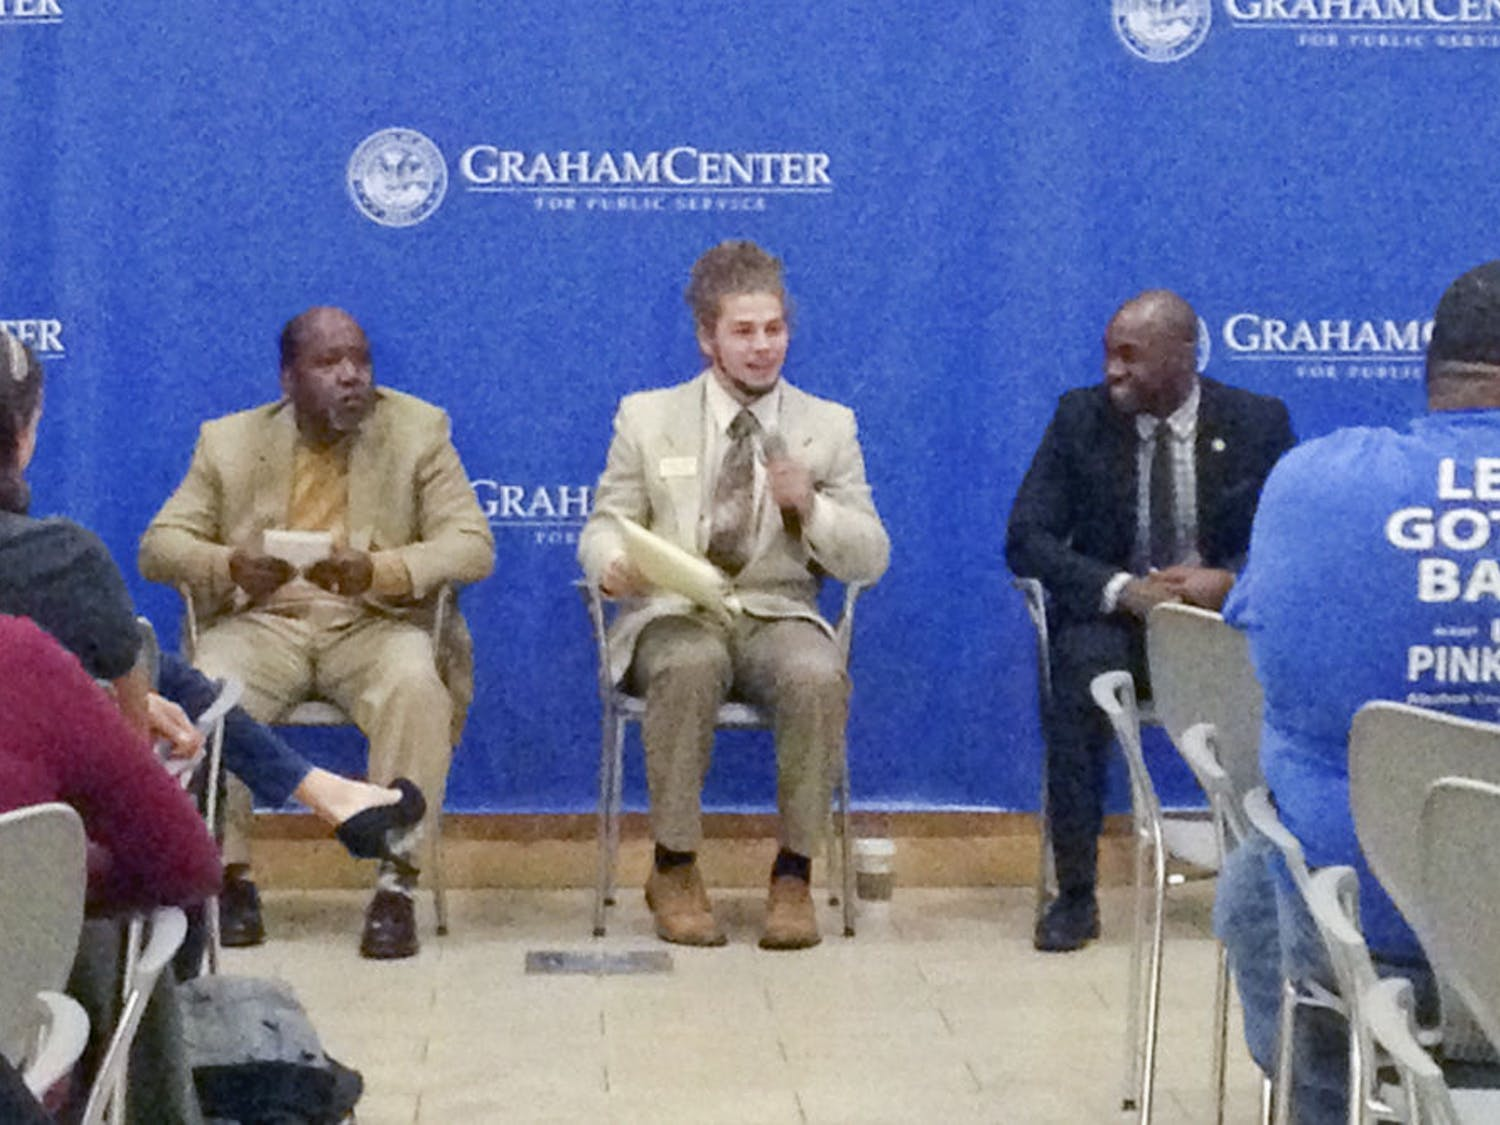 From left: Scherwin Henry, Lucas Jewell and Chris Weaver, all candidates for city commissioner for District 1, speak to an audience at an open forum event hosted by UF College Democrats in Pugh Hall on Friday night.